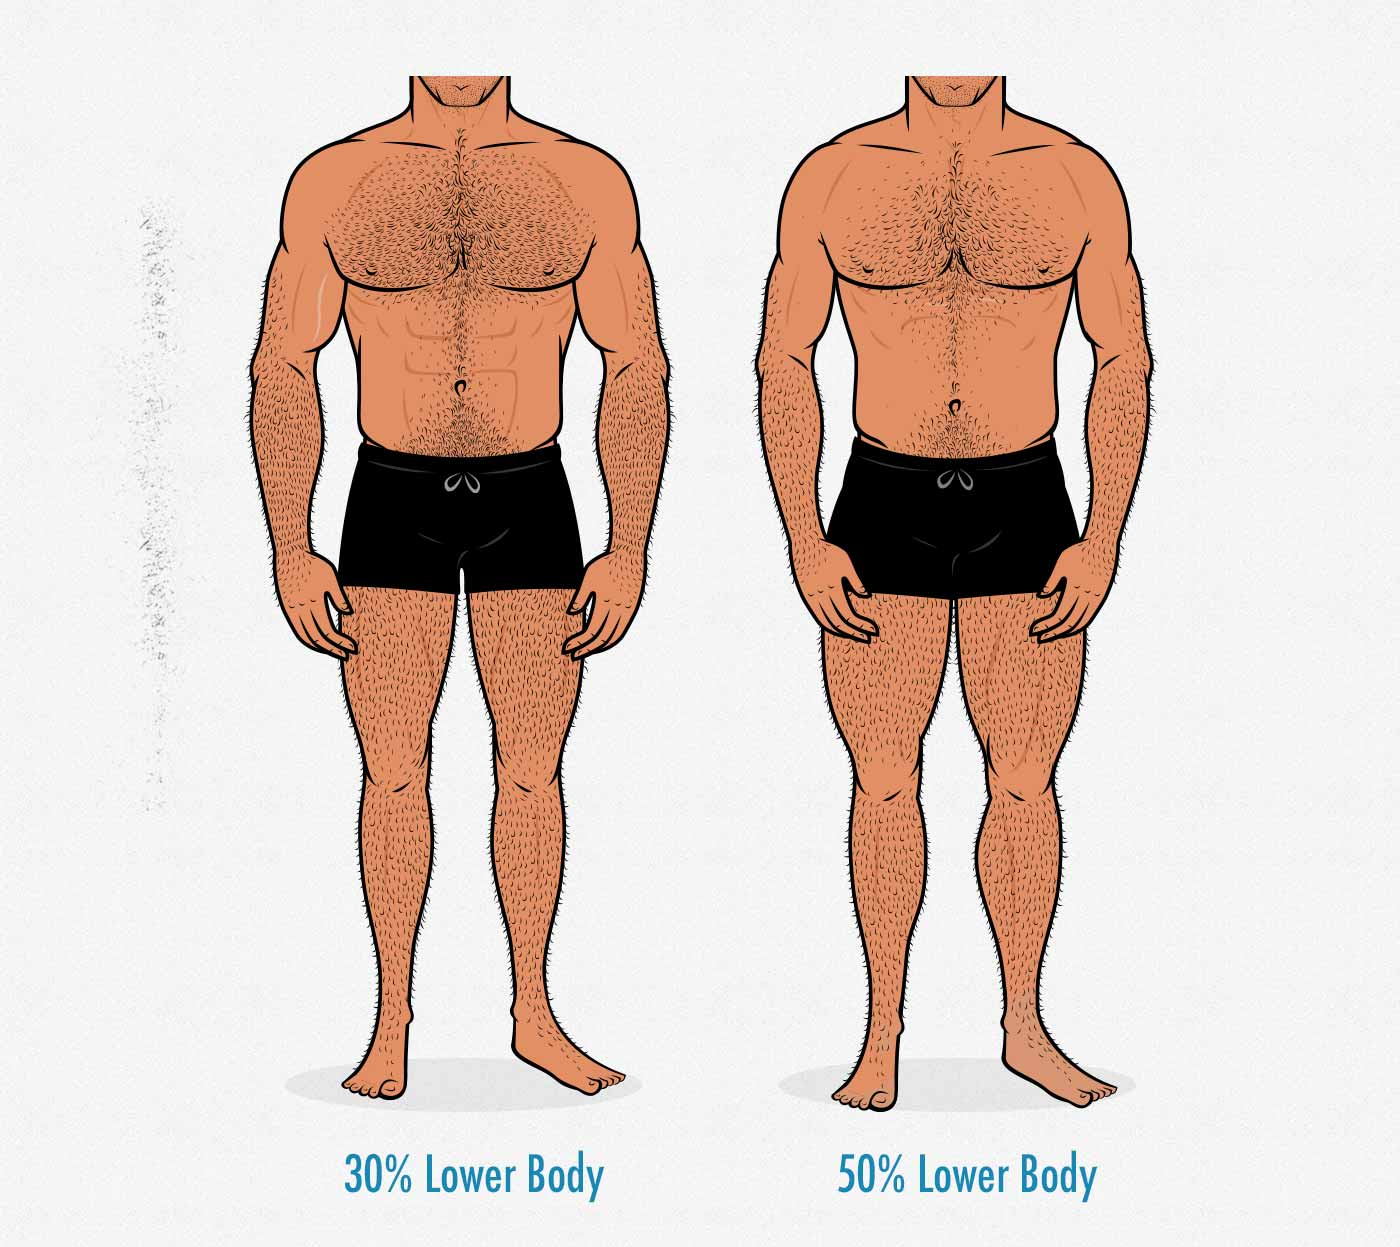 Illustration of two men with different upper and lower body proportions